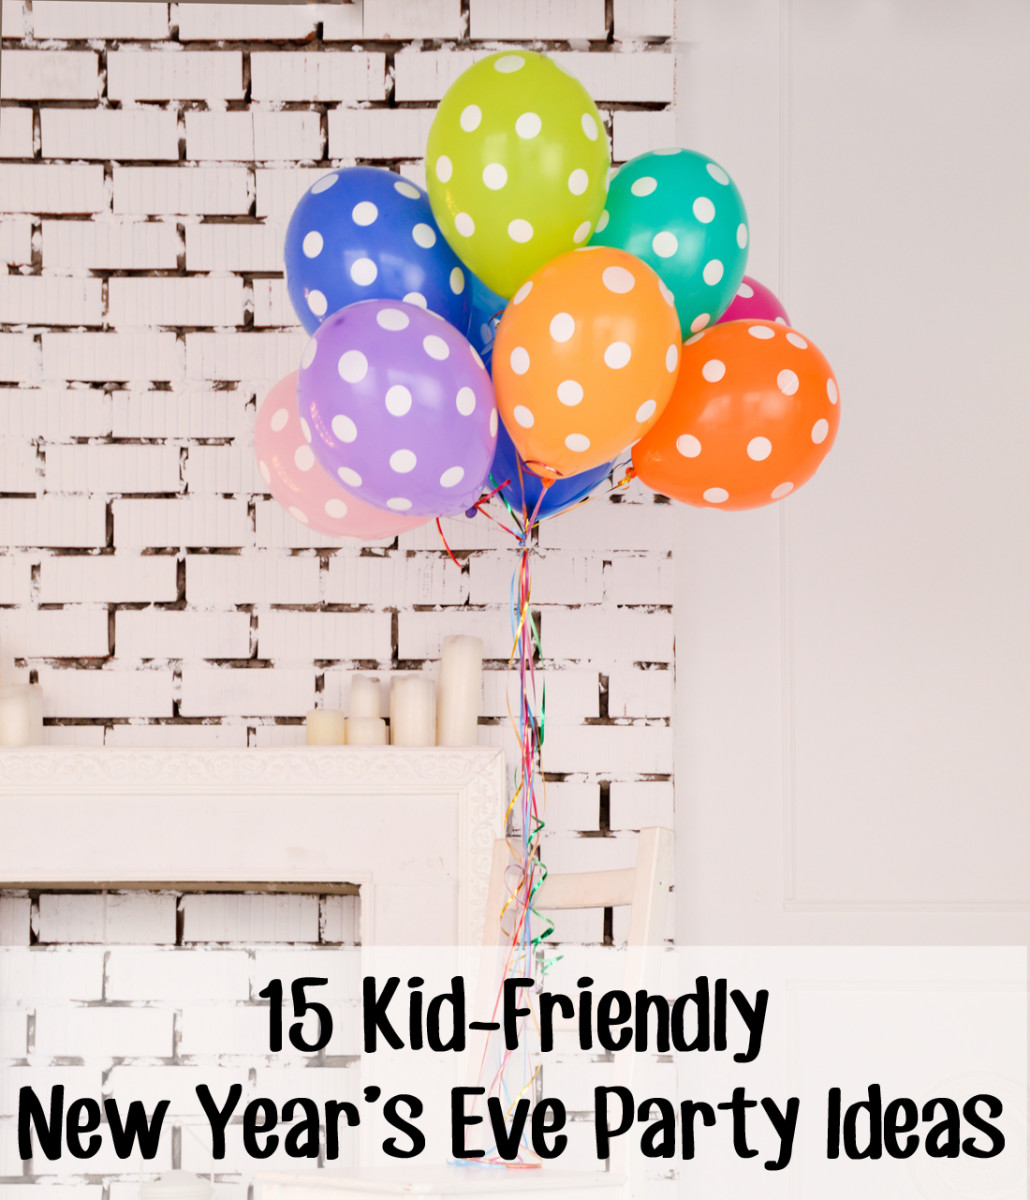 15 kid-friendly New Year's Eve party ideas